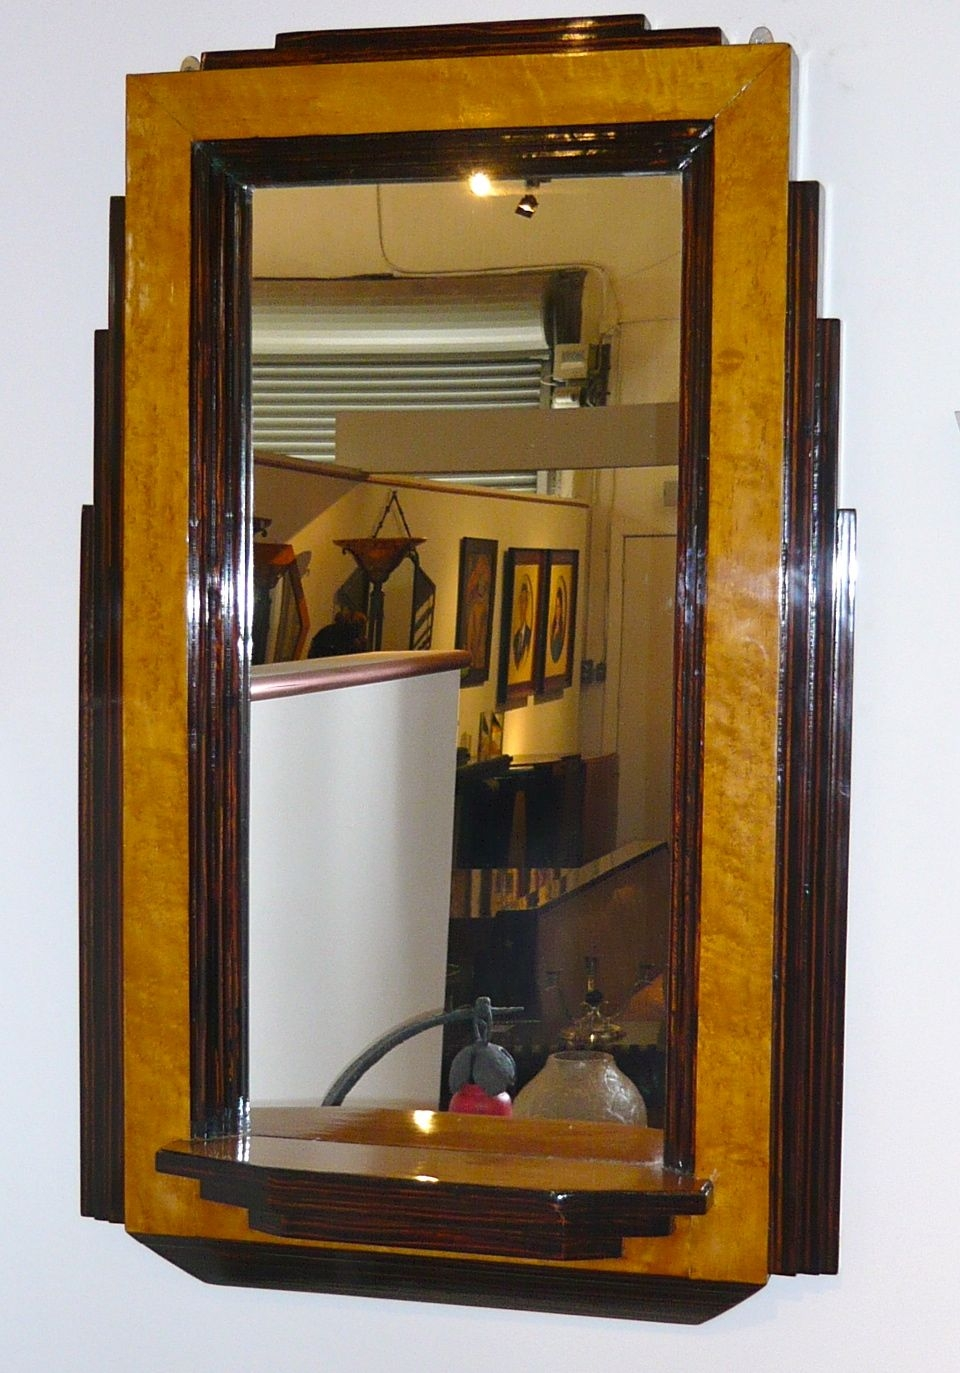 Art Deco Mirrors For Sale Art Deco Collection Within Art Nouveau Mirrors For Sale (View 2 of 15)